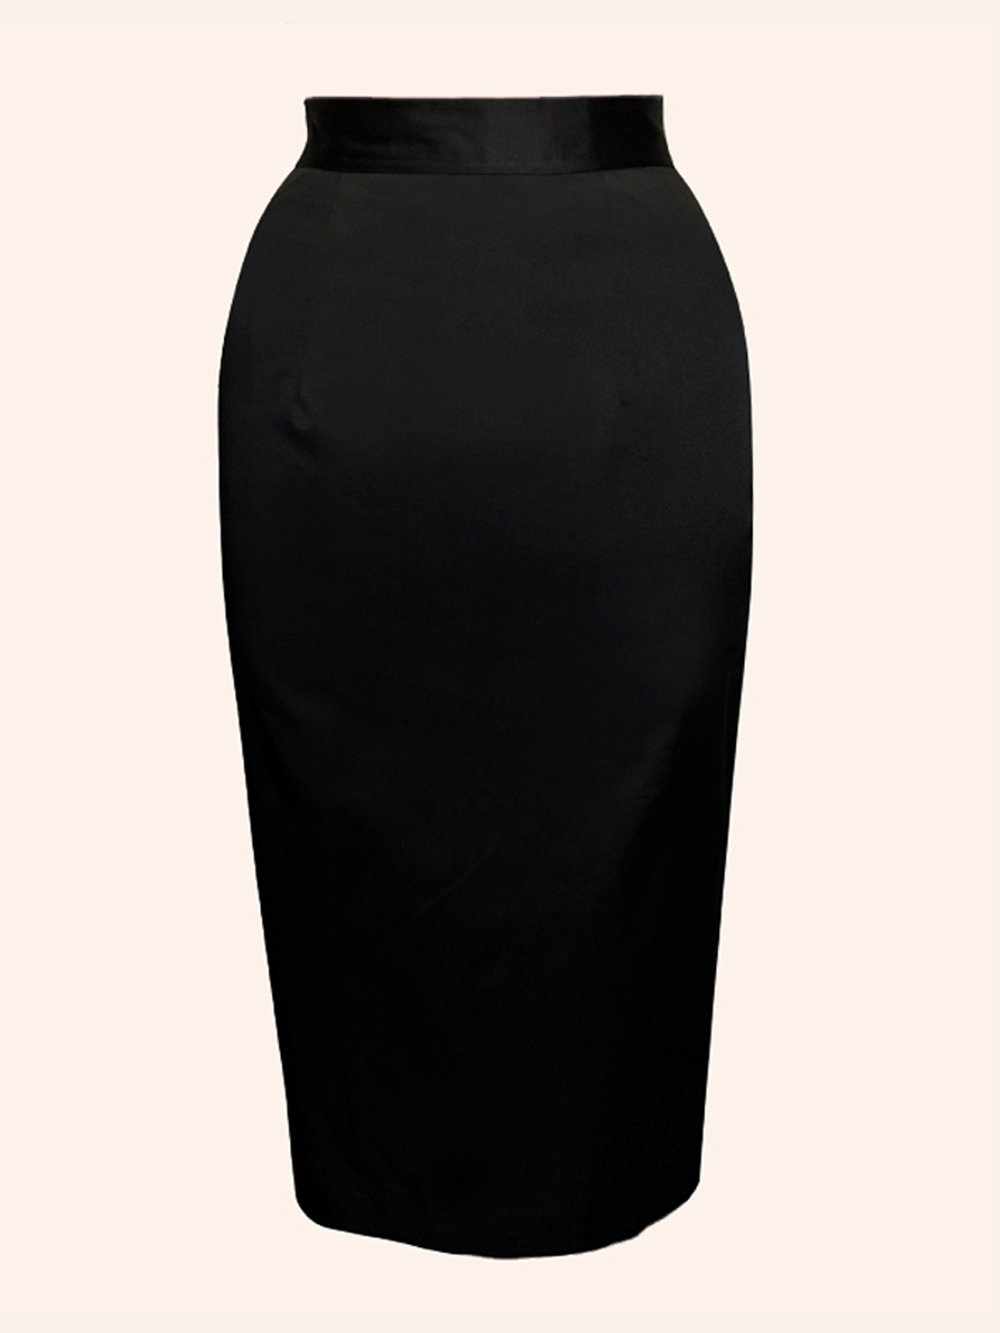 Girls' Black Skirts. invalid category id. Girls' Black Skirts. Showing 48 of results that match your query. Search Product Result. Product - Karen Michelle Girls Black-Line Knee Length Cotton Skirt. Product Image. Price $ Product Title.